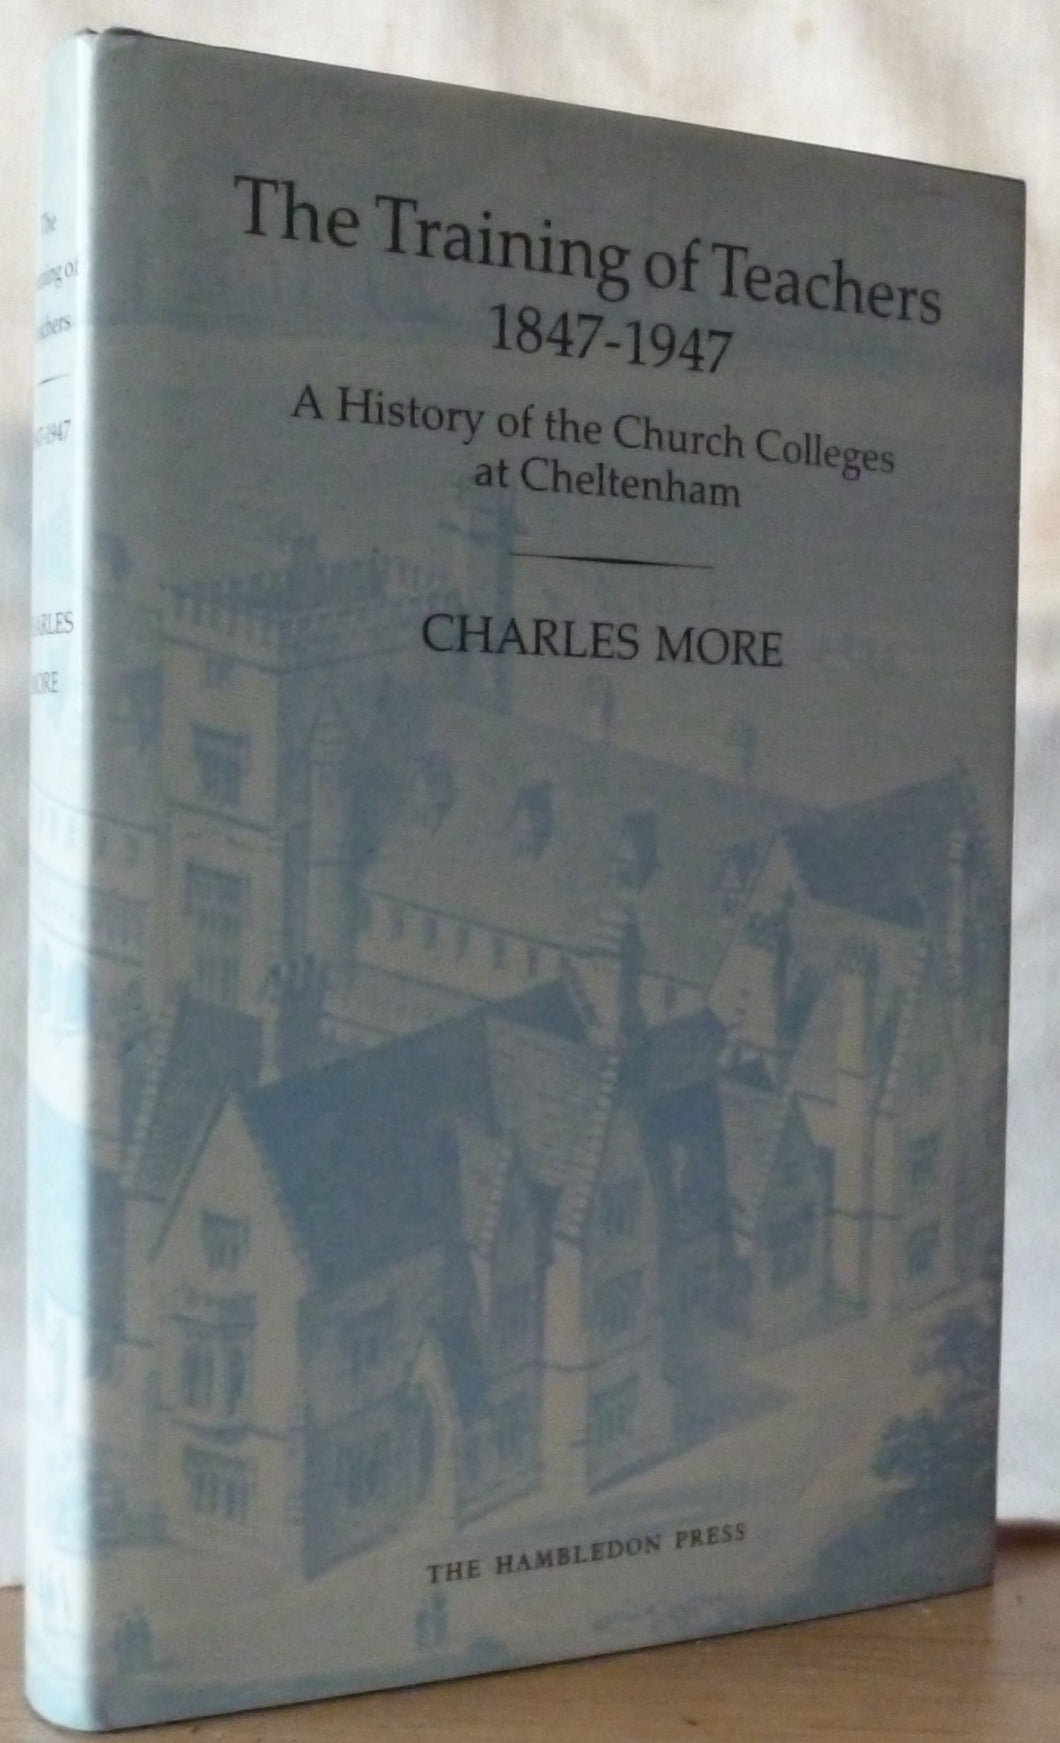 The Training of Teachers, 1847-1947: History of the Church Colleges at Cheltenham More, Charles